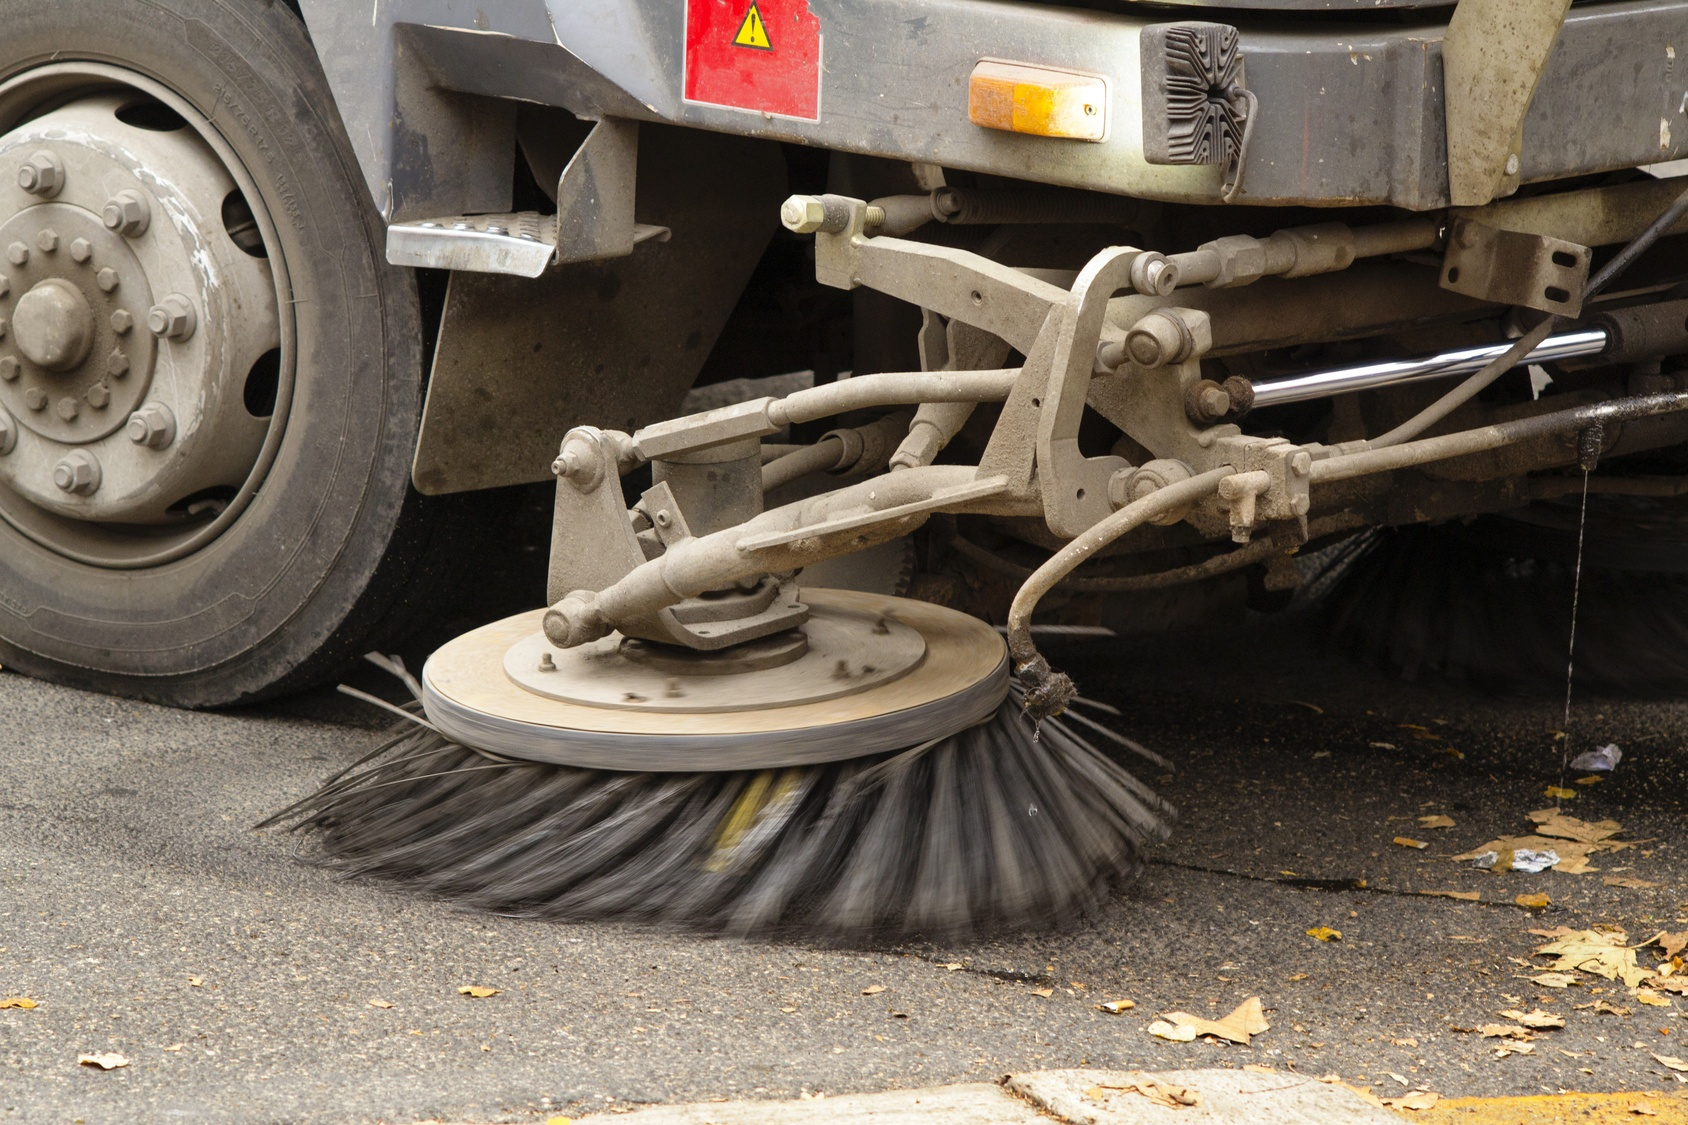 keeping streets clean can be important for municipal health and safety, in addition to making your roads look nice.